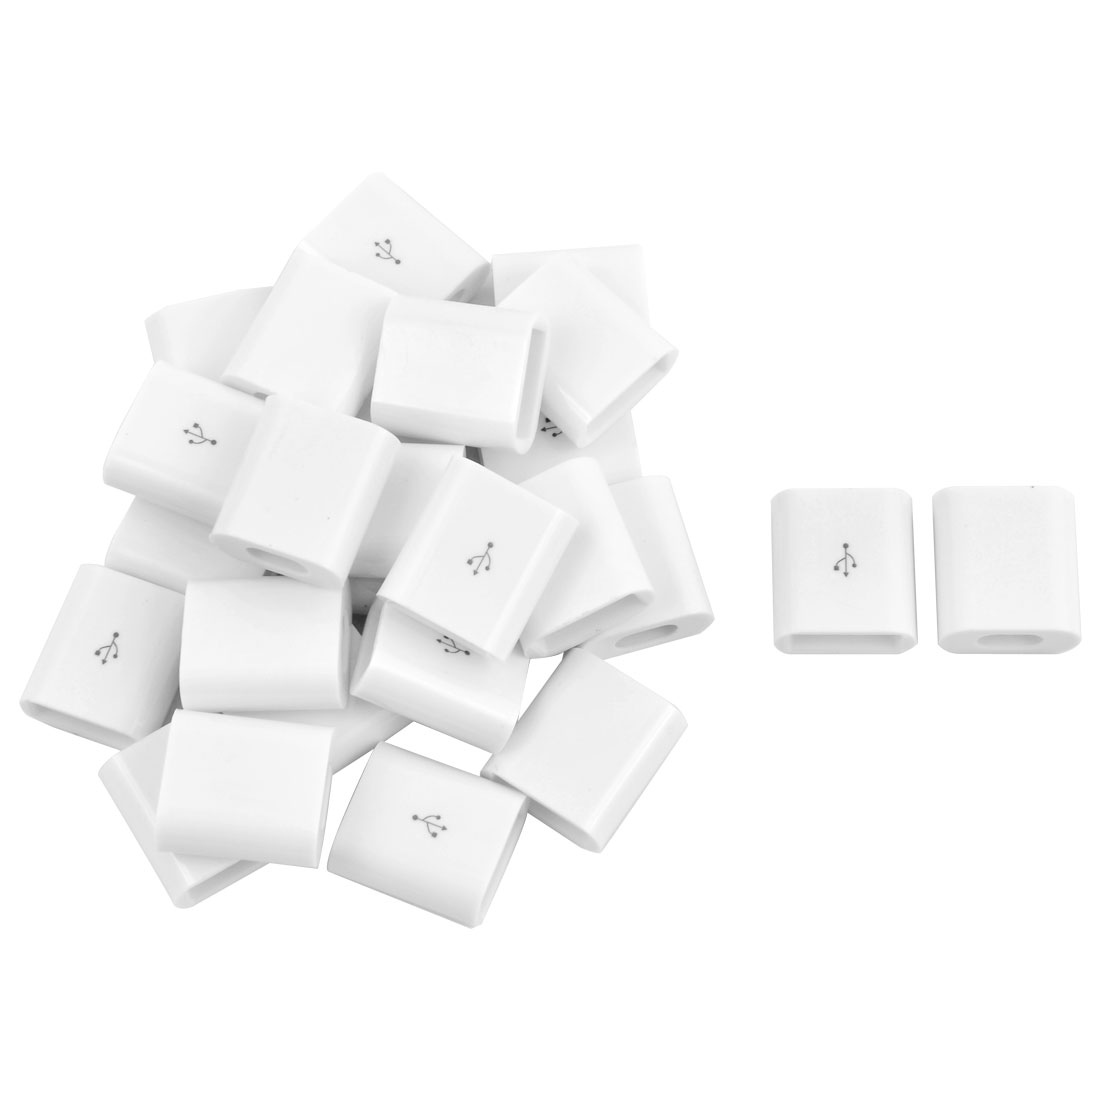 USB Type A Male DIY Connector Jack Cable Replacement Shell Cover White 26pcs